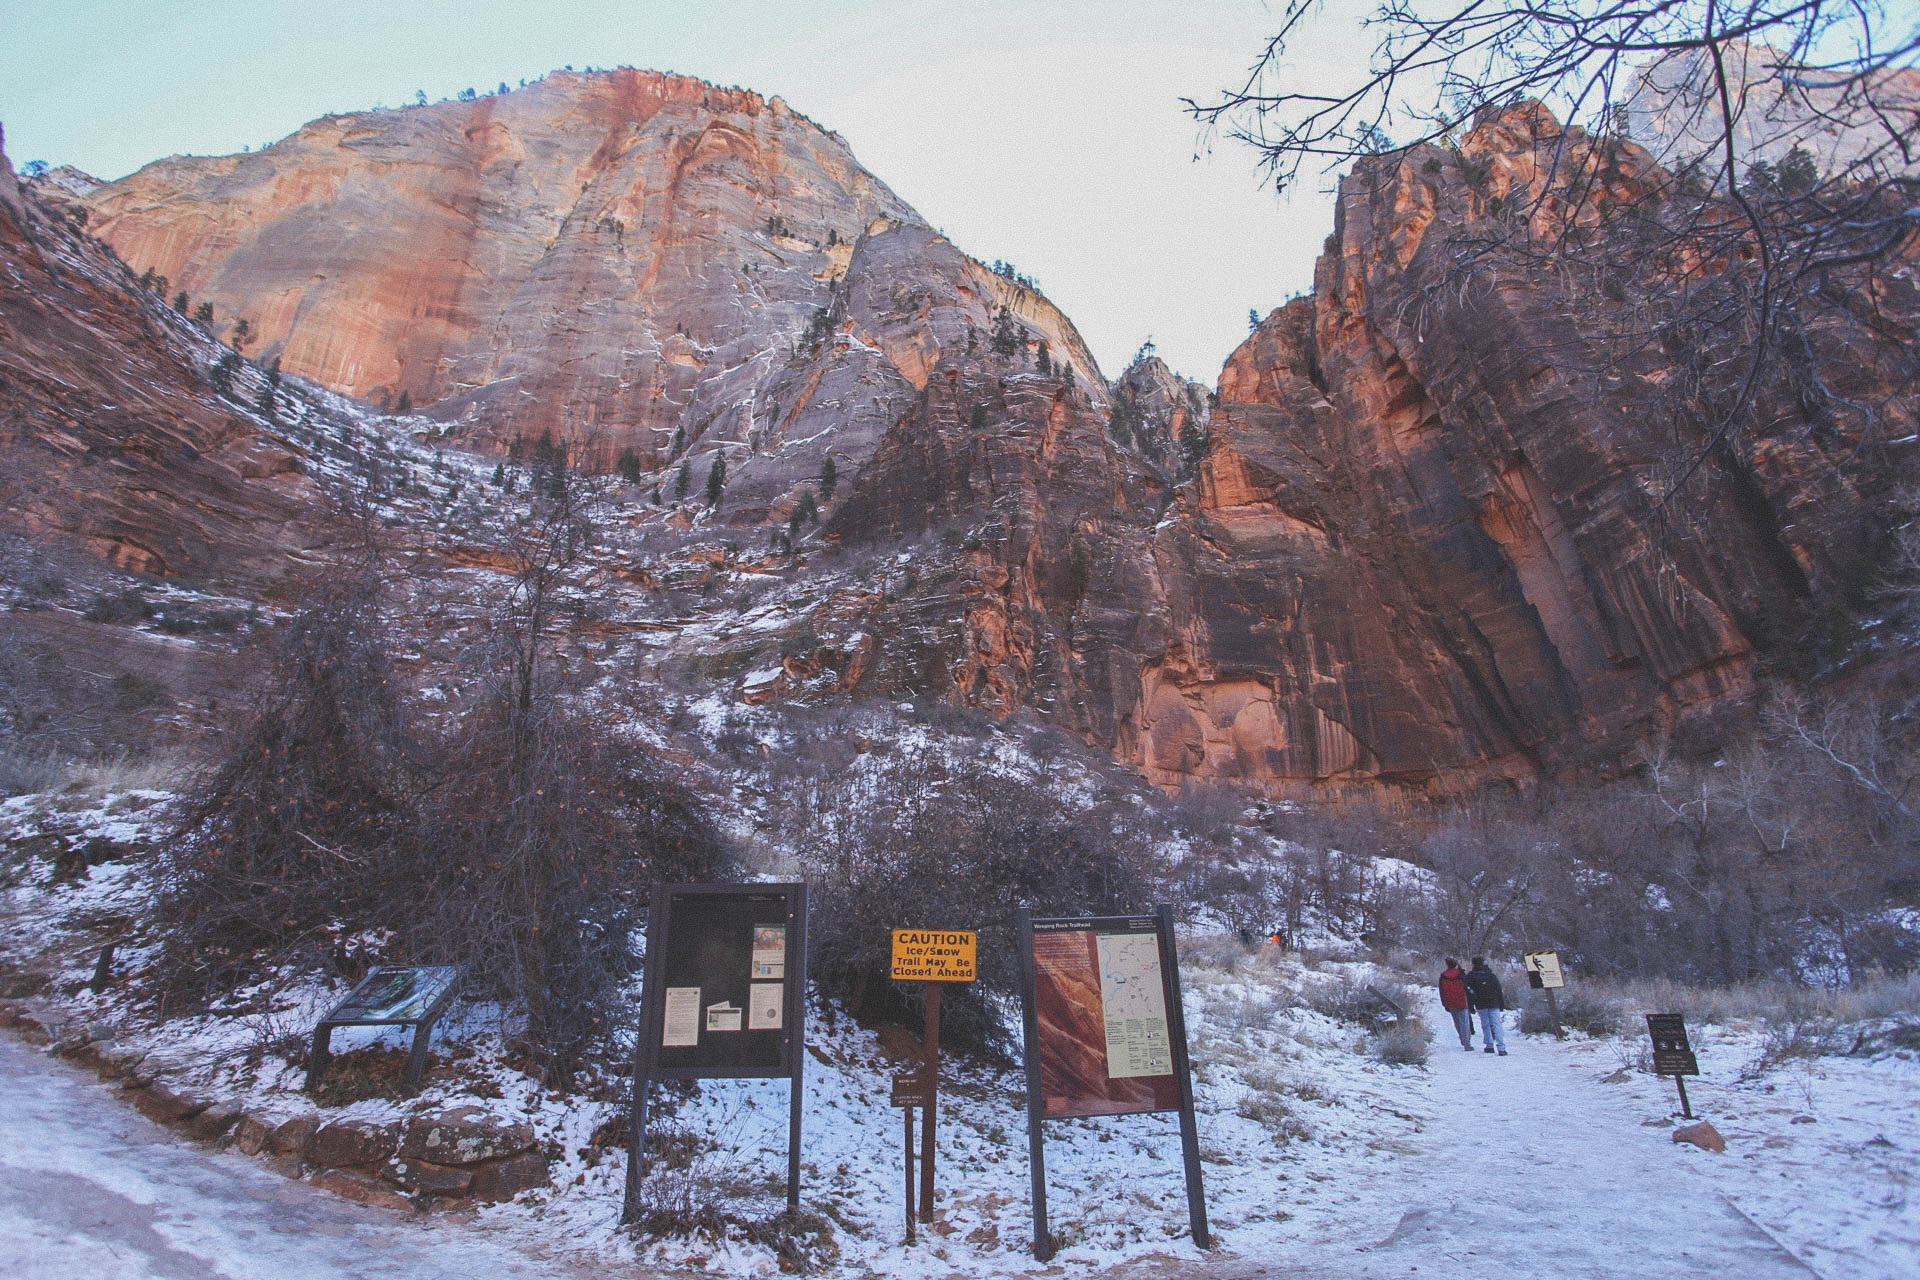 Weeping Rocks trailhead